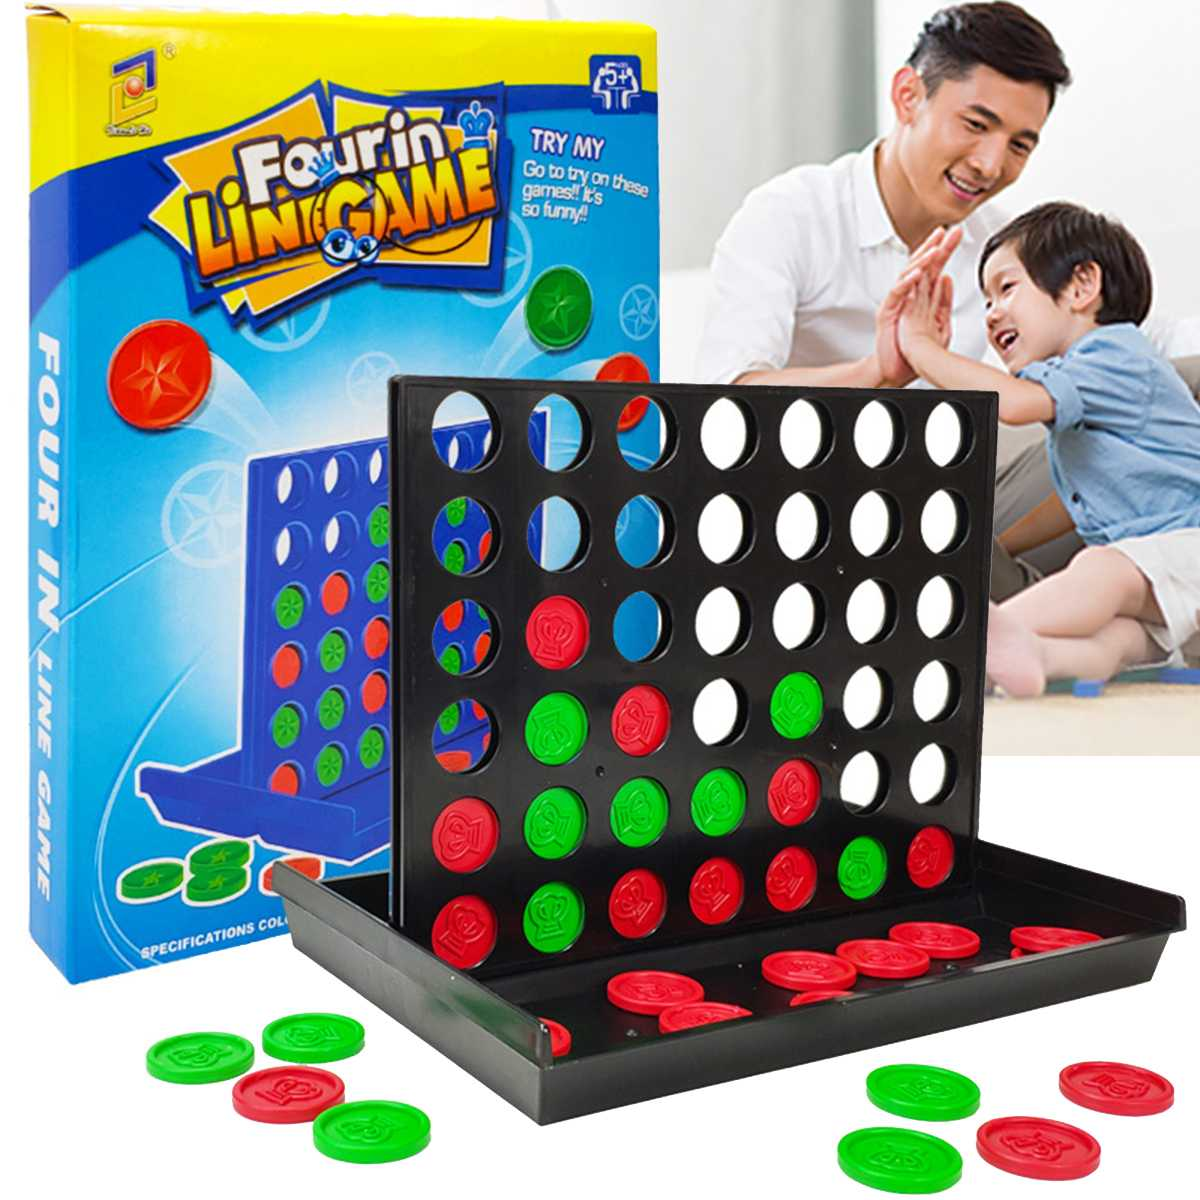 Newest Connect 4 Game Classic Masters Foldable Kids Children Line Up Row Board Puzzle Toys Gifts Board Game 25x19.5x20cm